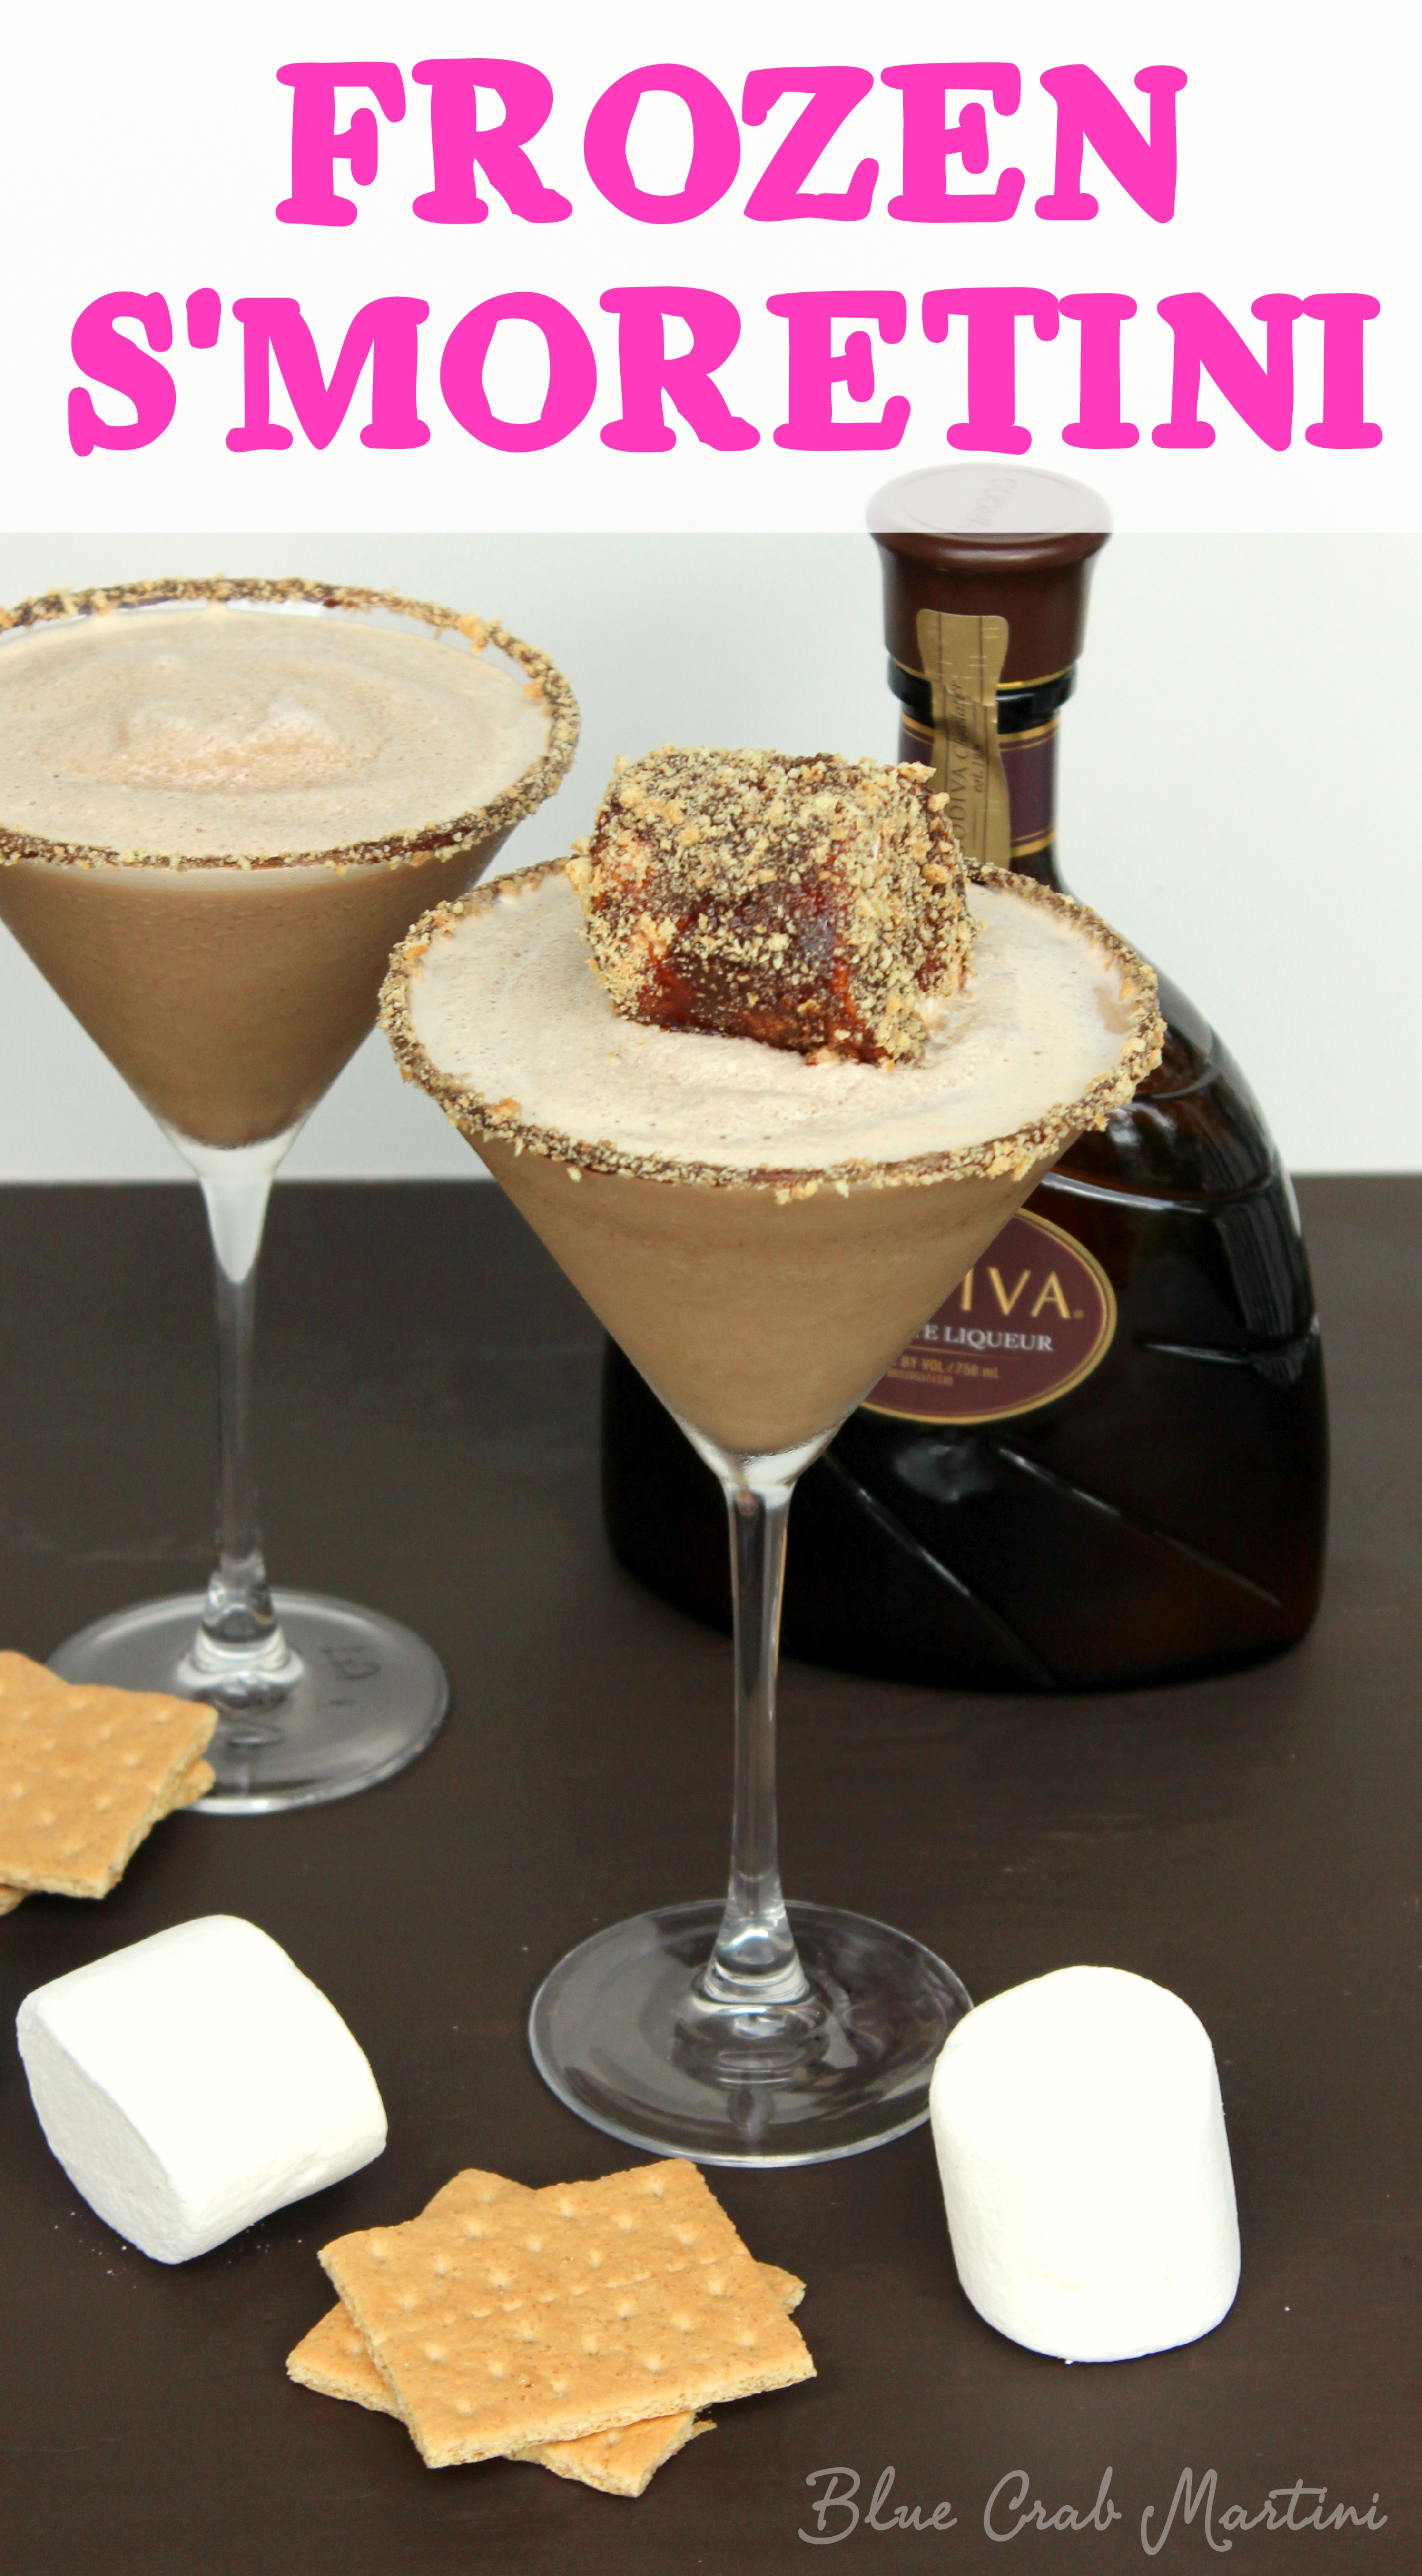 Frozen S'moretini - My Suburban Kitchen